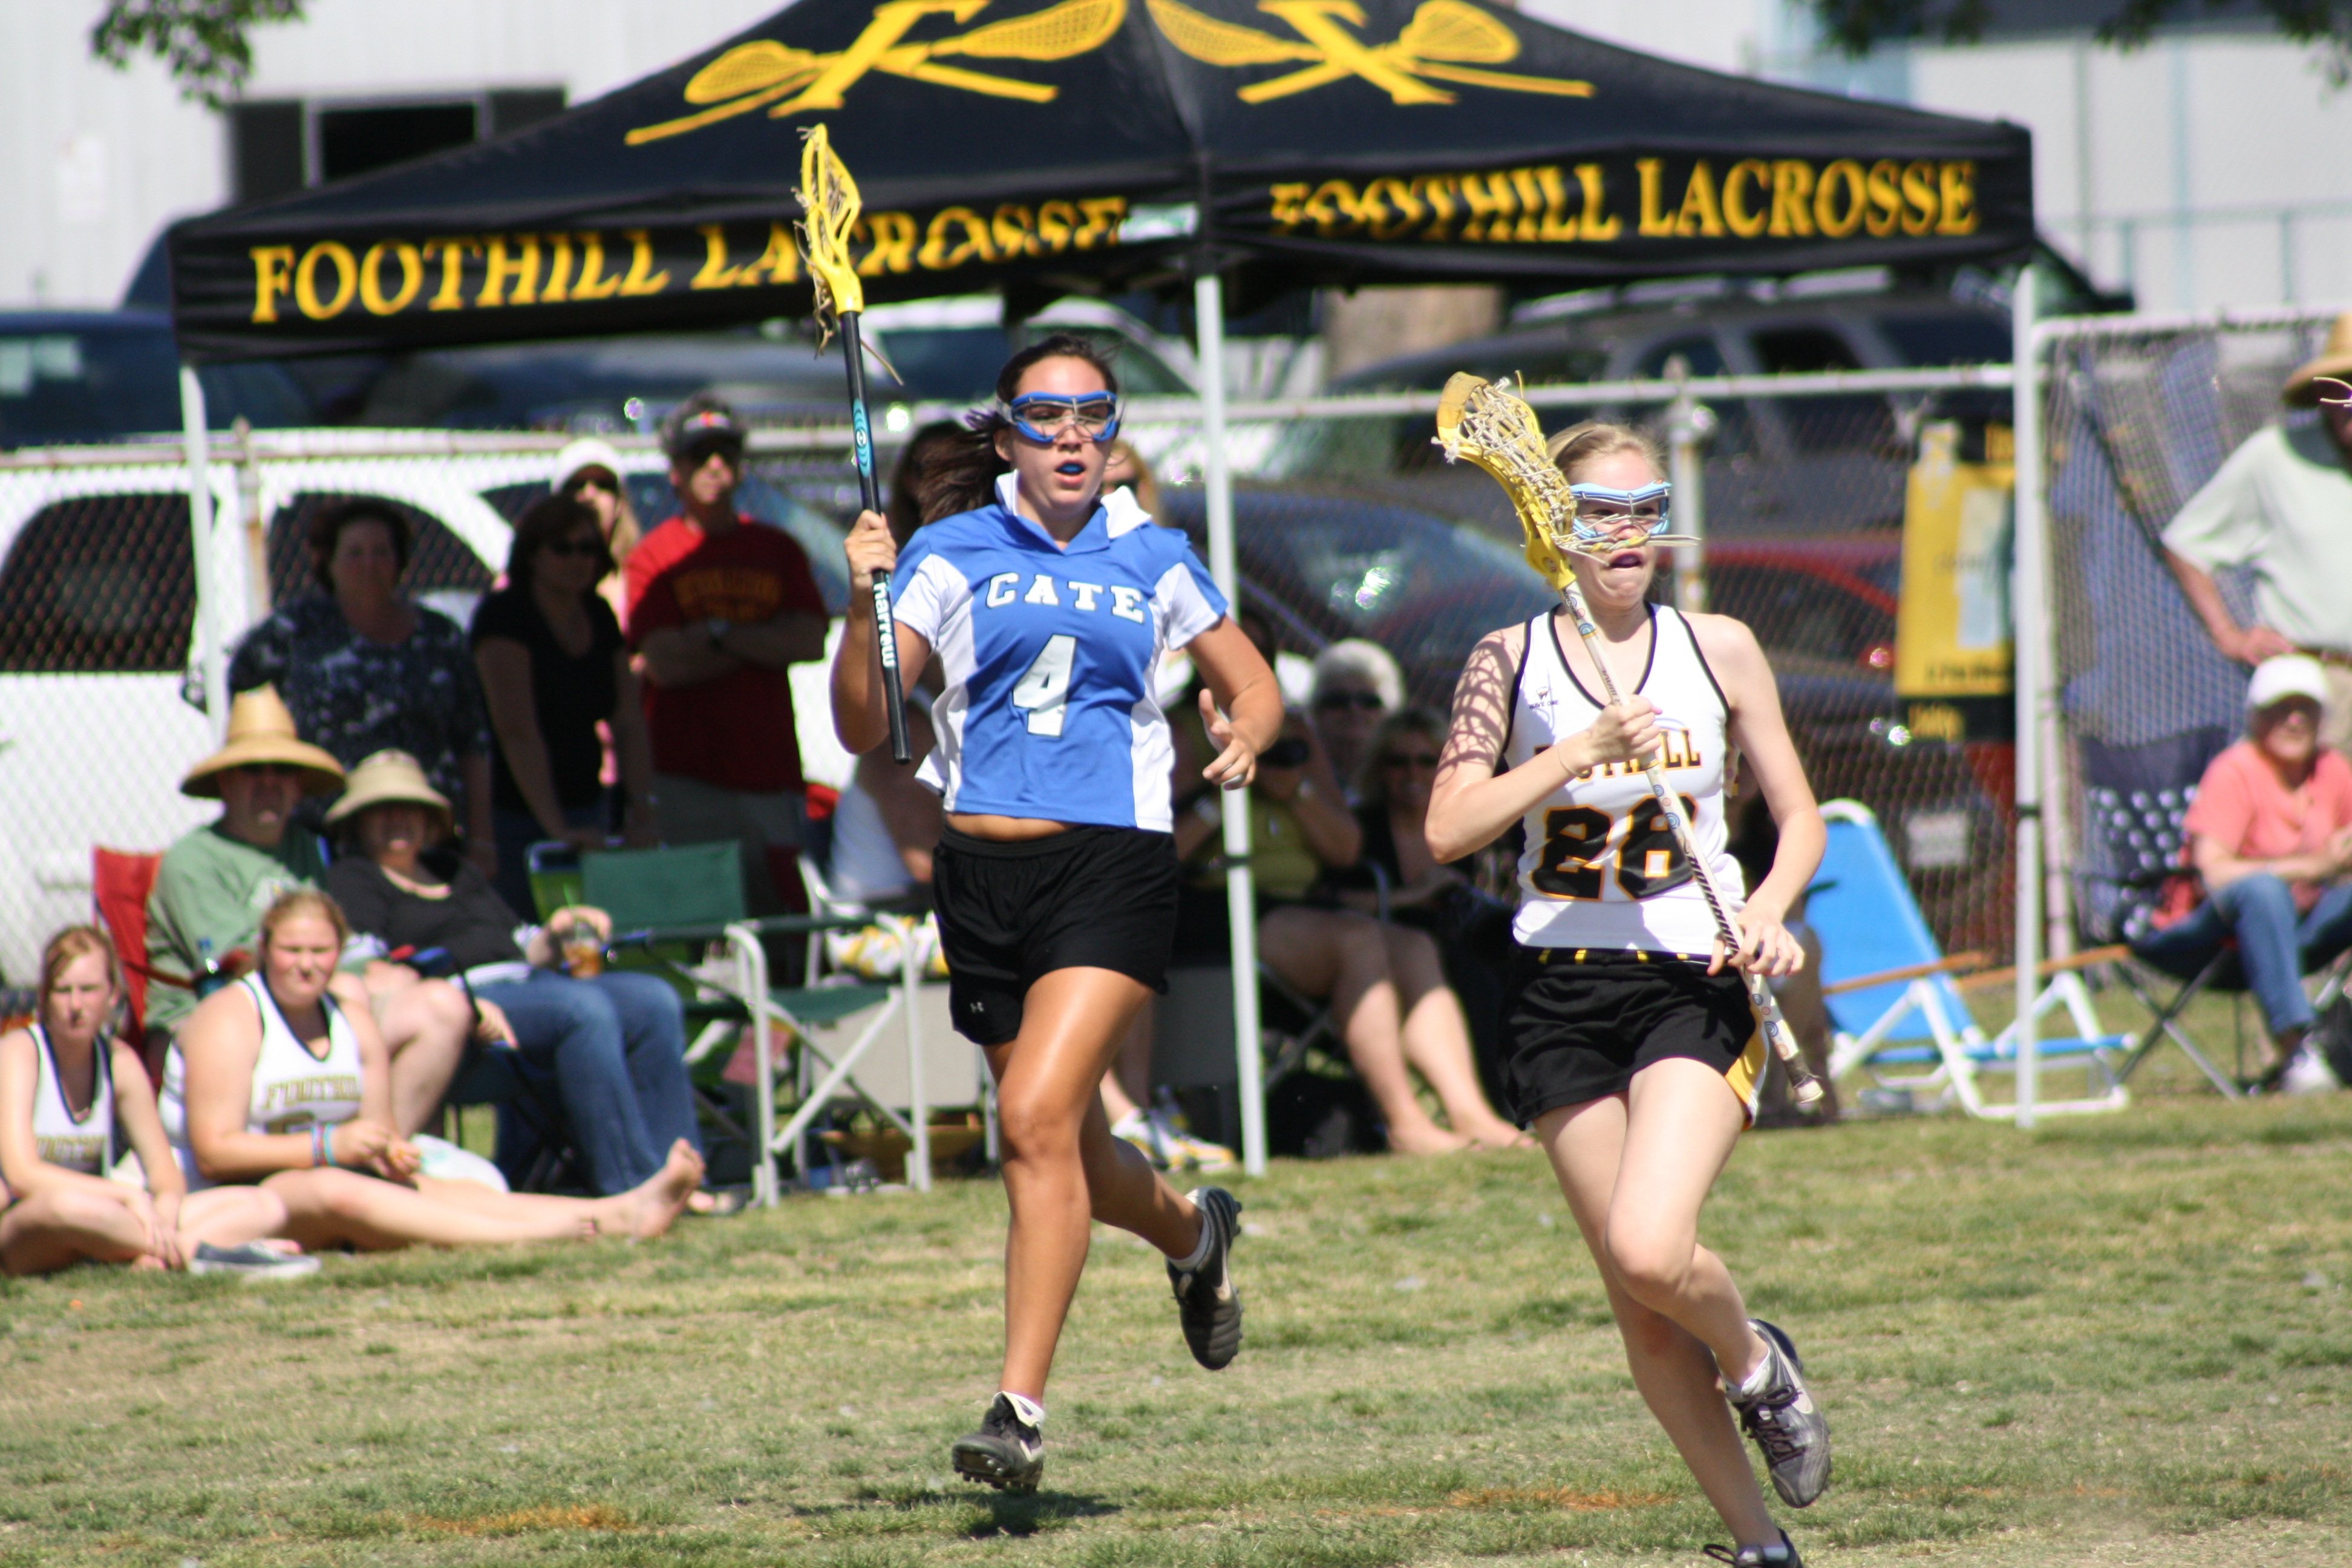 Foothill Varsity Girls on the attack against Cate School Saturday.